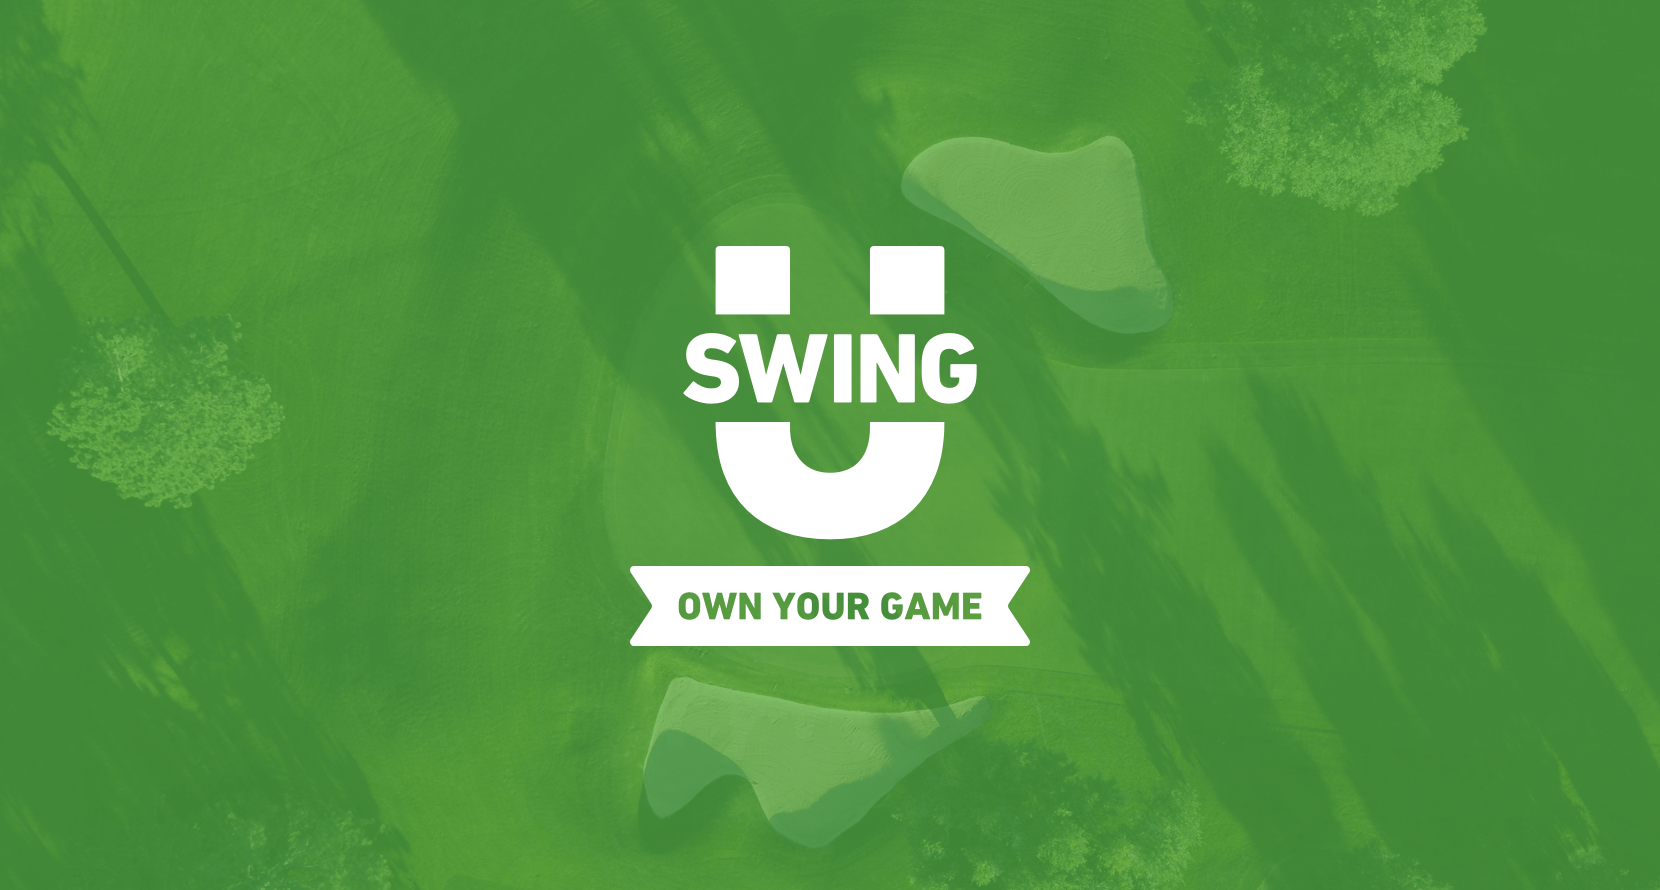 Swing by Swing Golf Launches Enhanced GPS, Scorecard, Stats and Instruction App